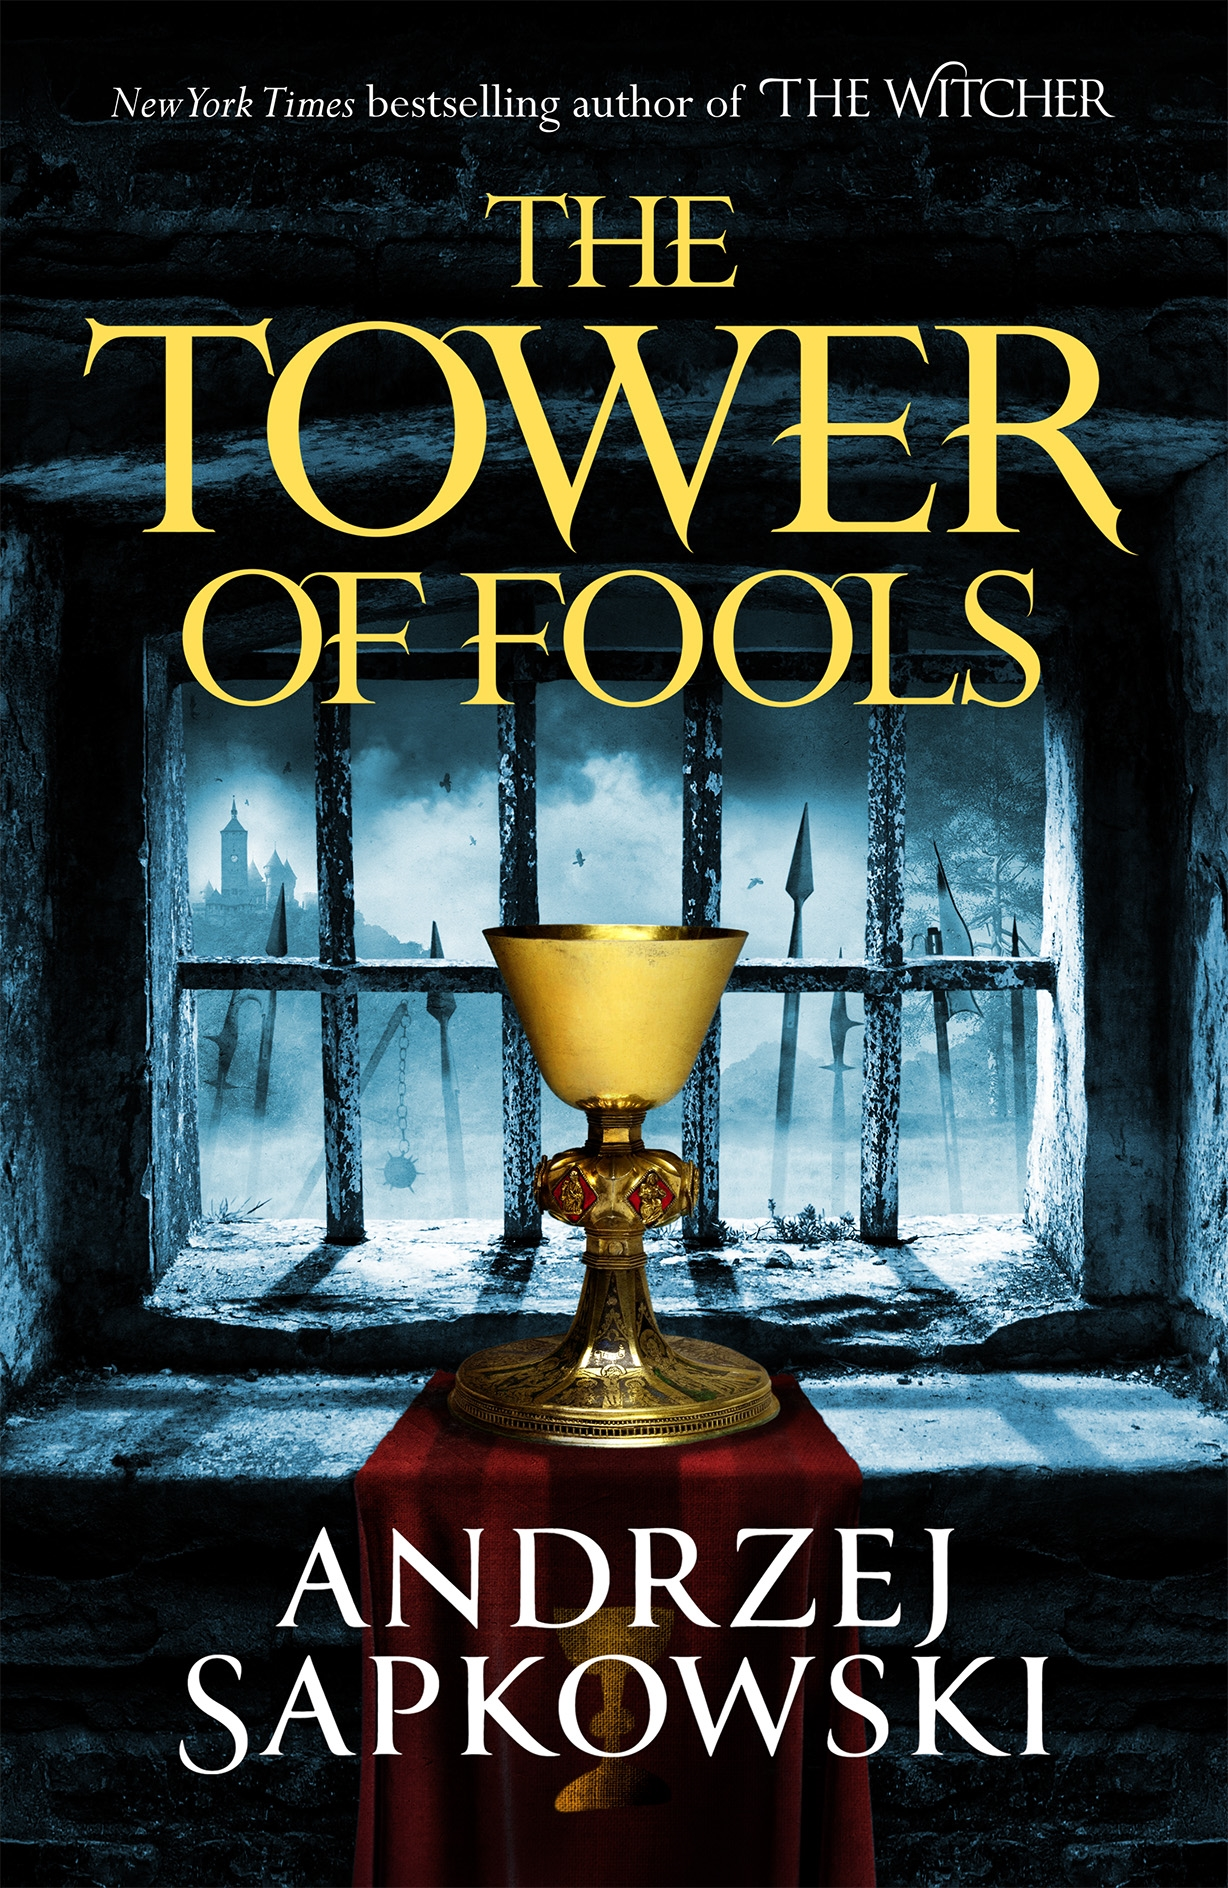 The Tower of Fools – an excerpt